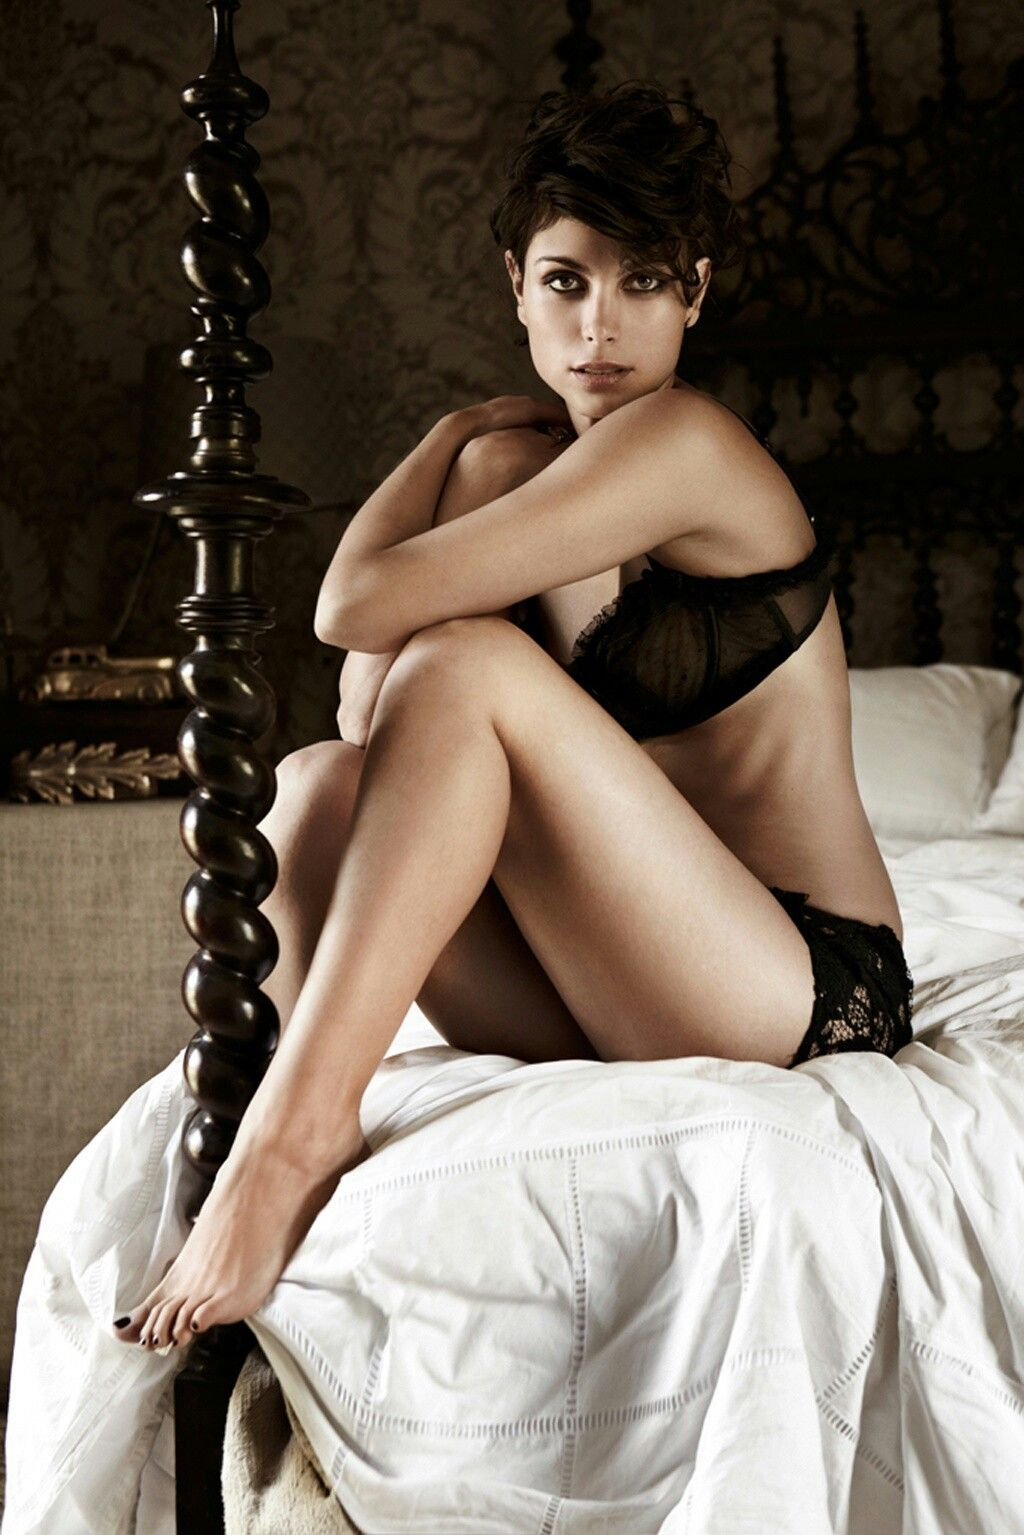 Morena Baccarin riding cock